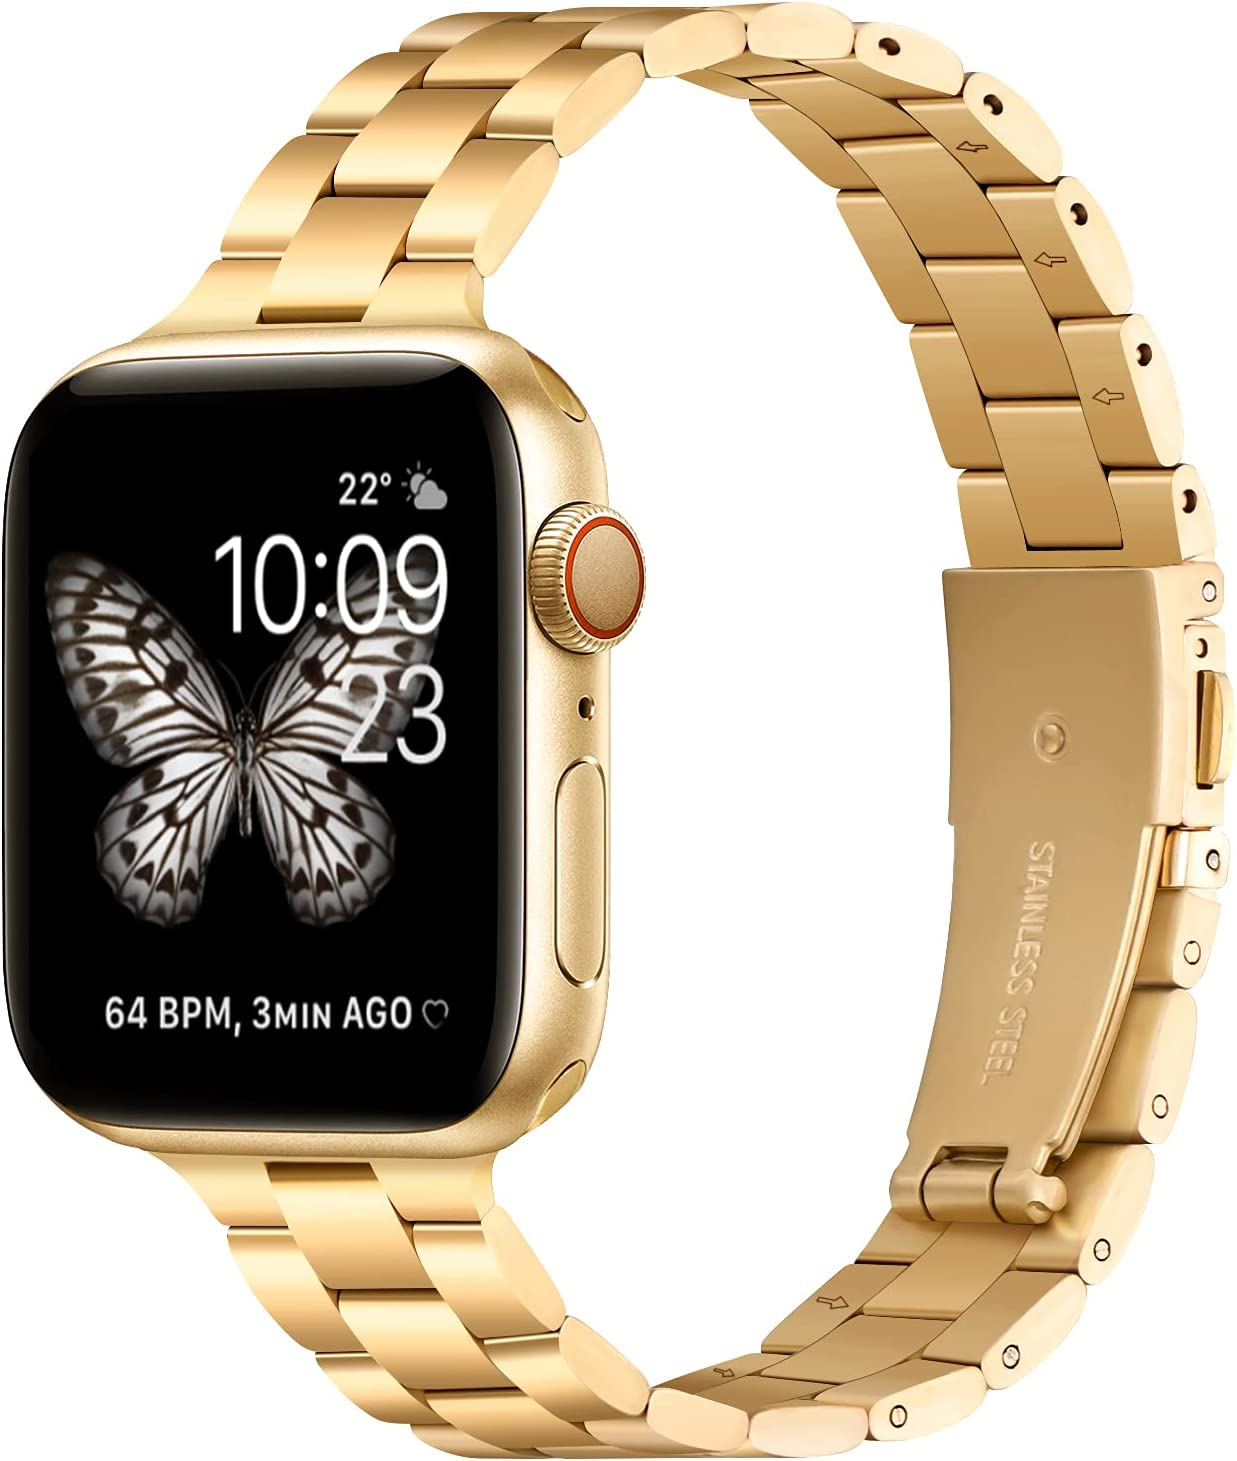 Thin Metal Band Compatible with Apple Watch 38mm 40mm Slim Stainless Steel Adjustable Wristband Strap for iWatch SE Series 6 5 4 3 2 1 for Women Men,Gold